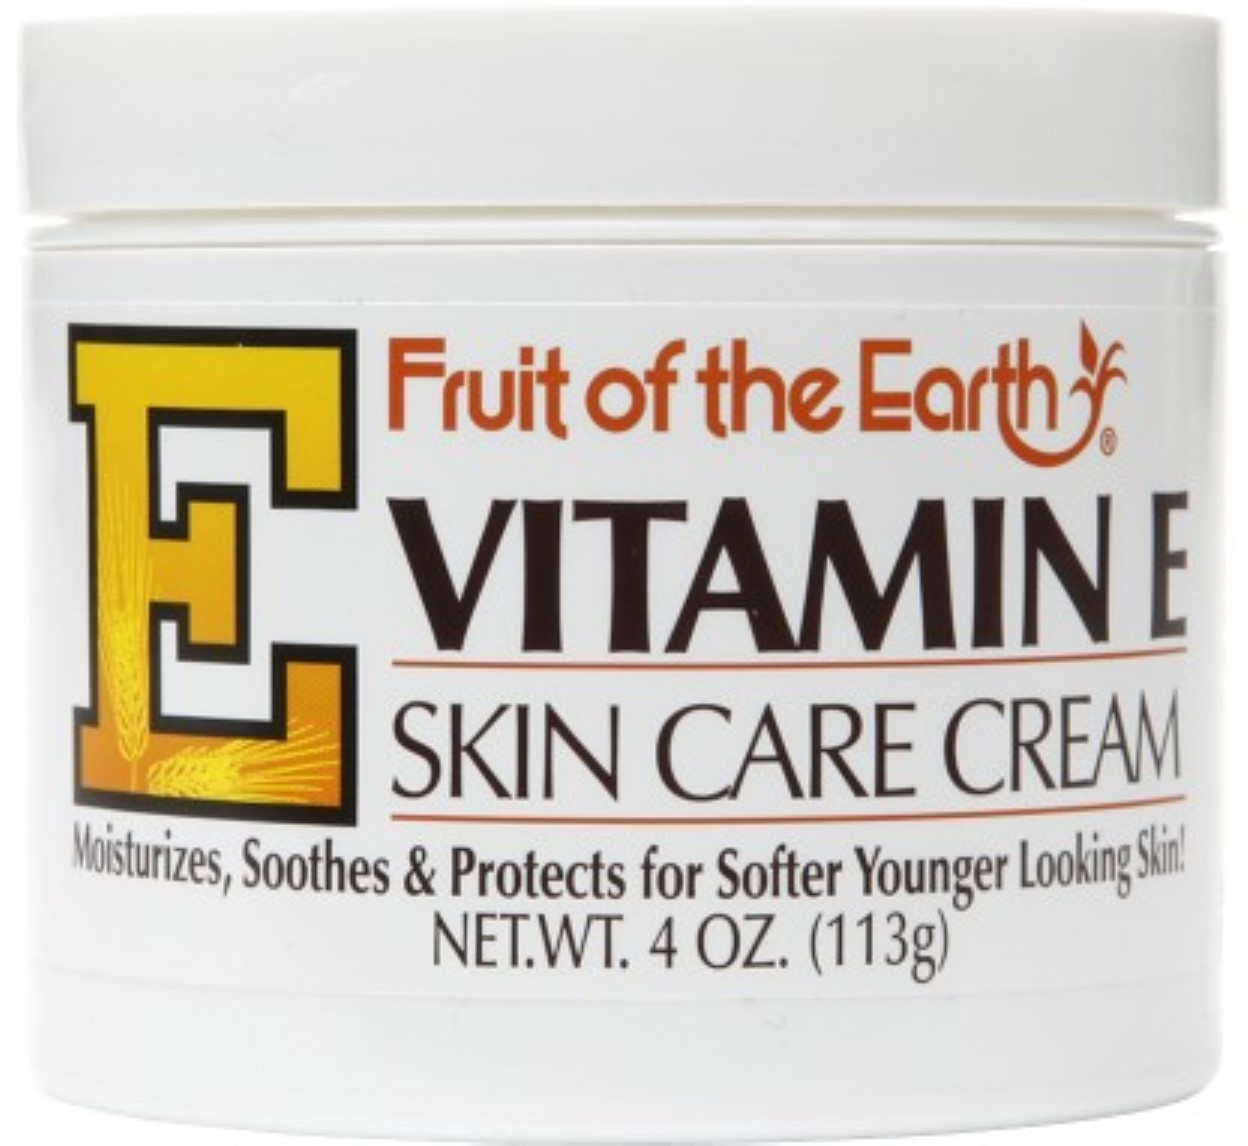 Fruit of the Earth Vitamin E Skin Care Cream 4 oz (Pack of 6)